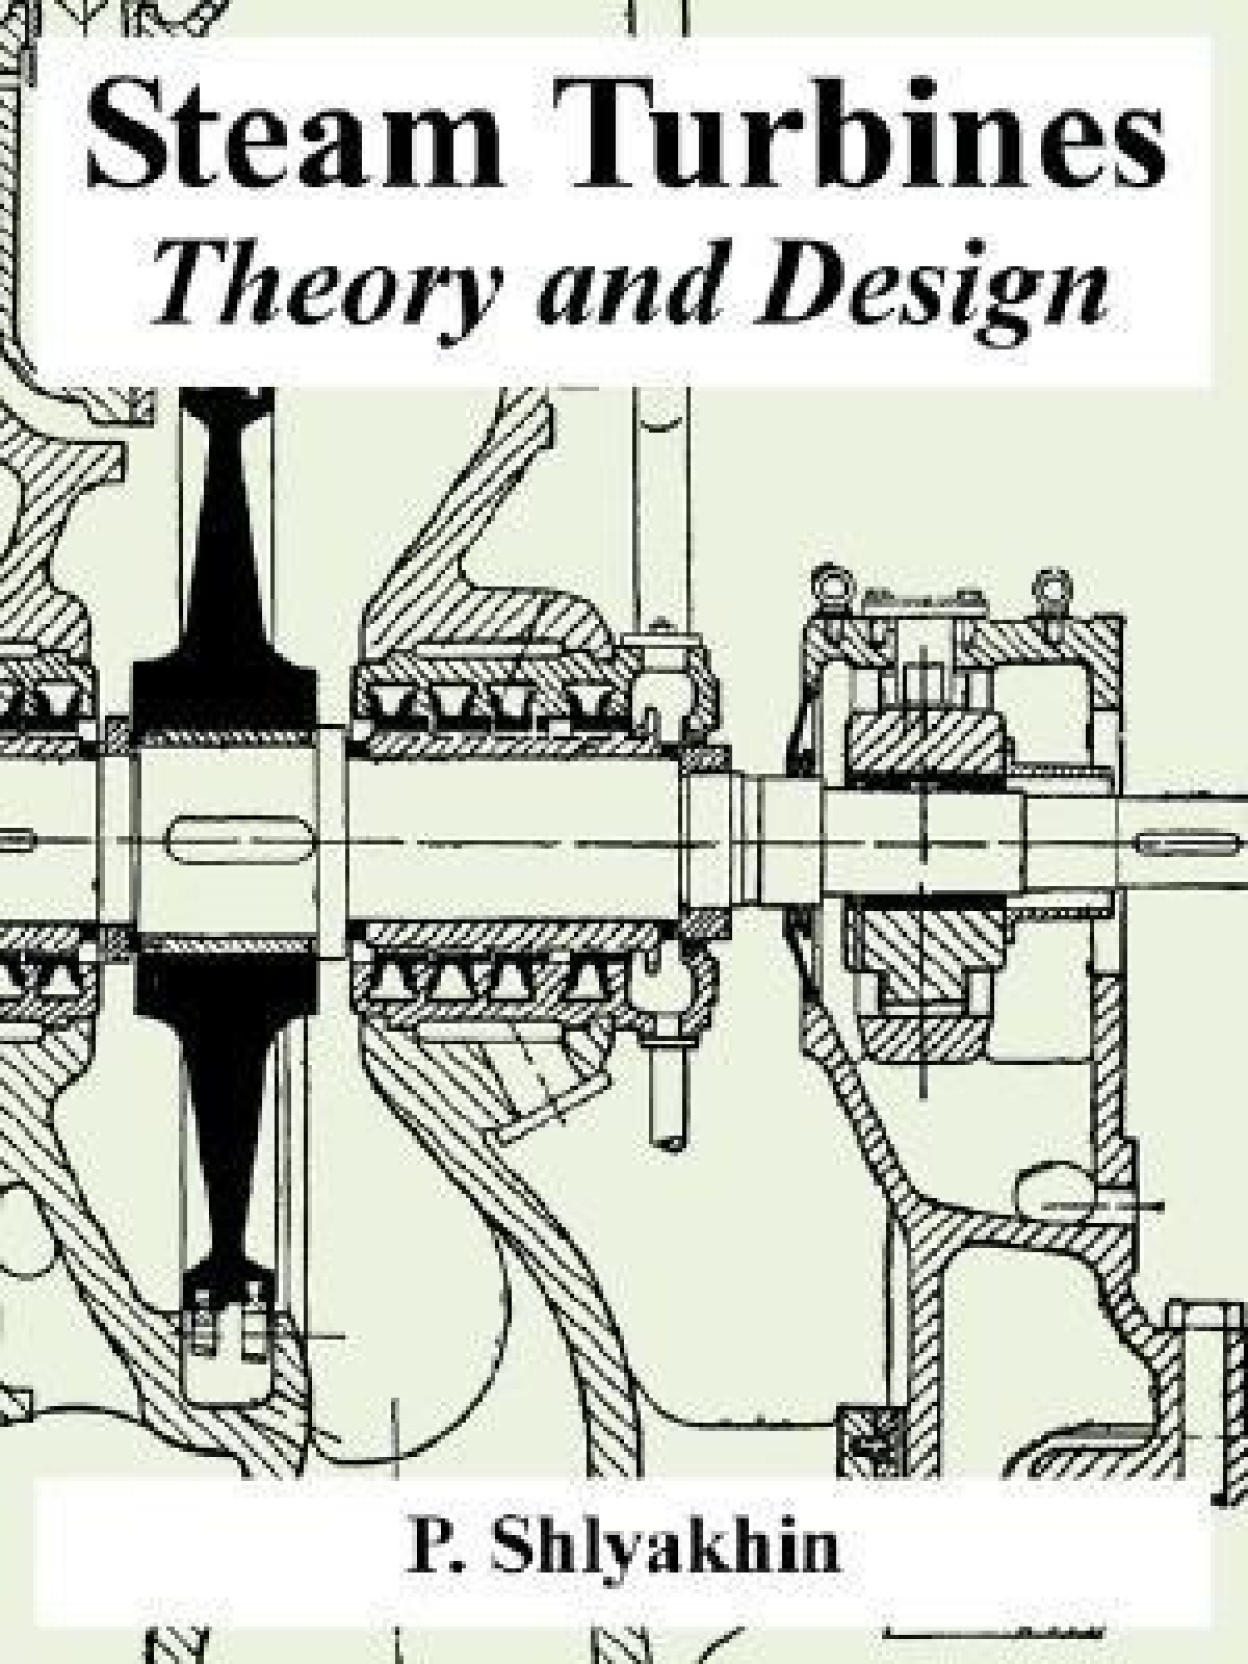 Steam Turbines Theory and Design Buy Steam Turbines Theory and